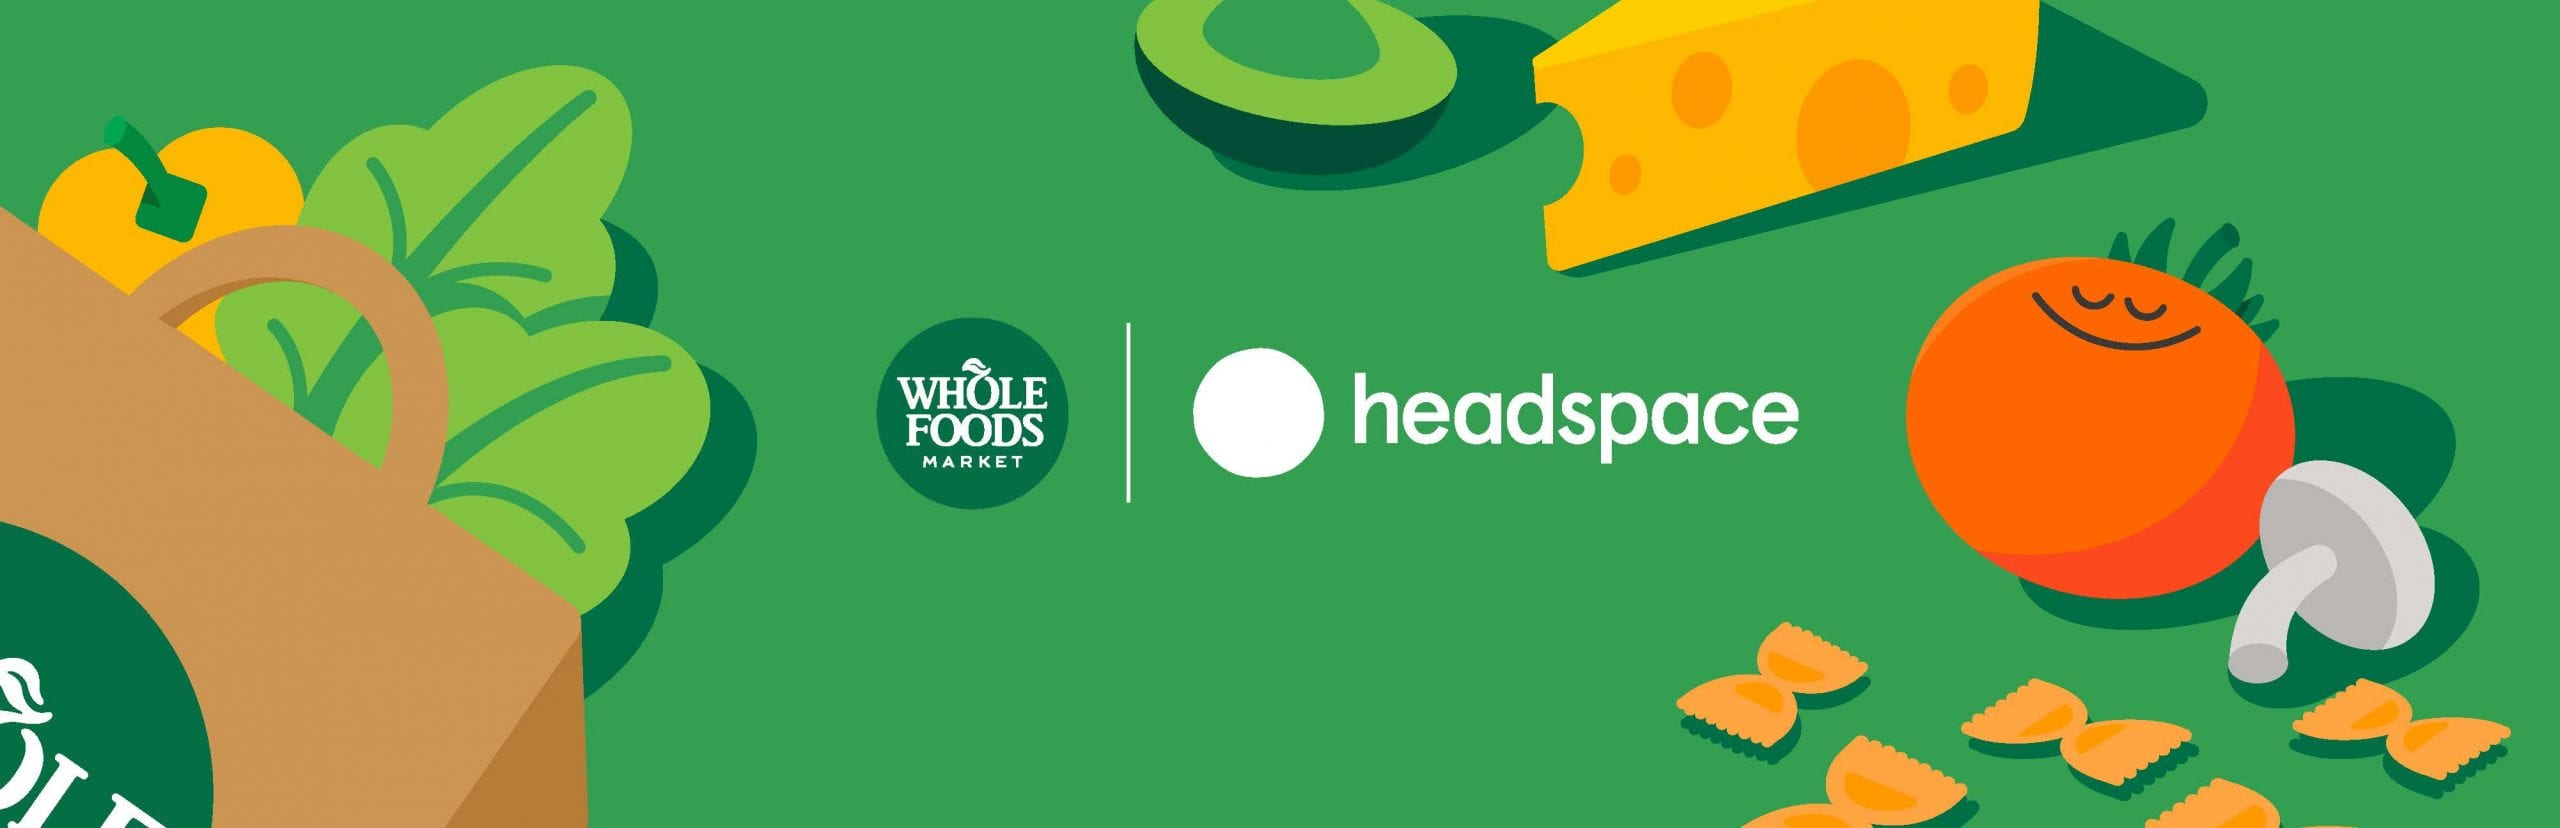 Whole Foods Market and Headspace team up to support well-being for mind and body this spring